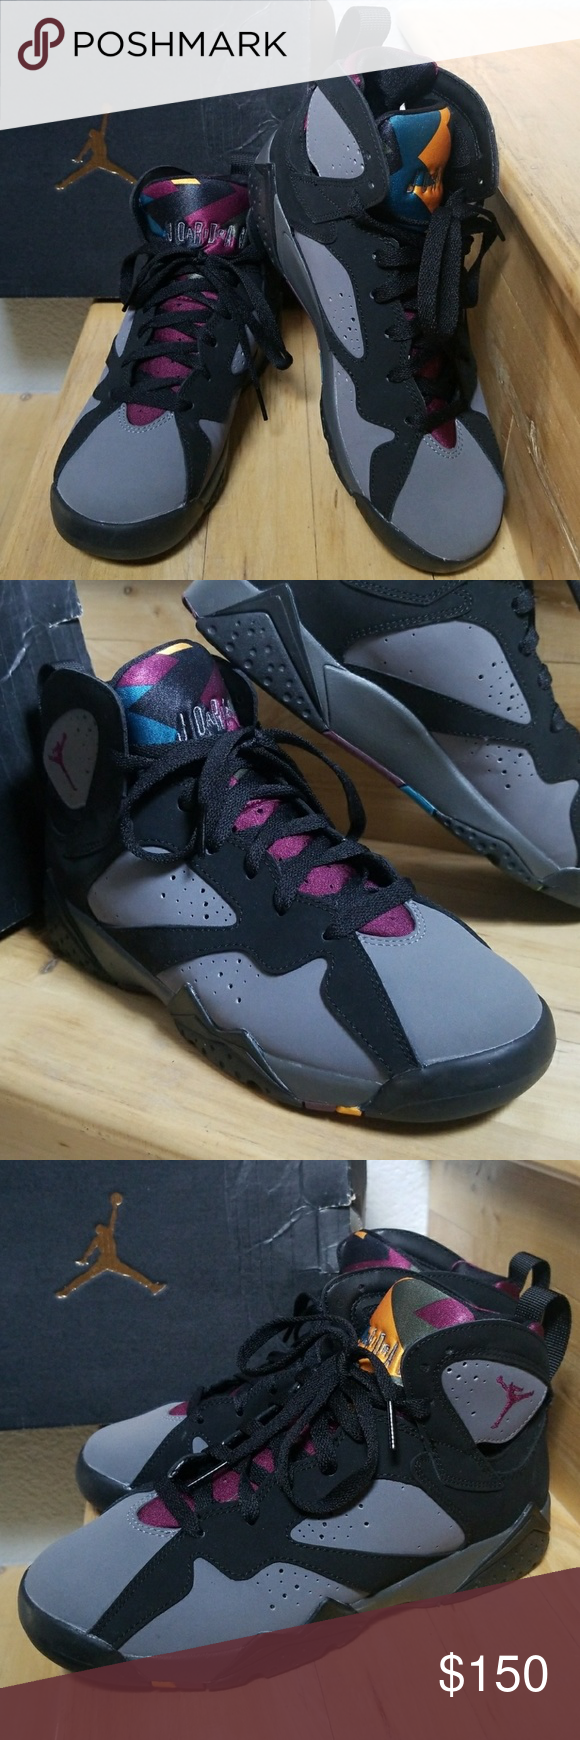 """○SOLD ON MERC○Air Jordan 7 """"Bordeaux"""" These are my pre-loved ac934894f0"""